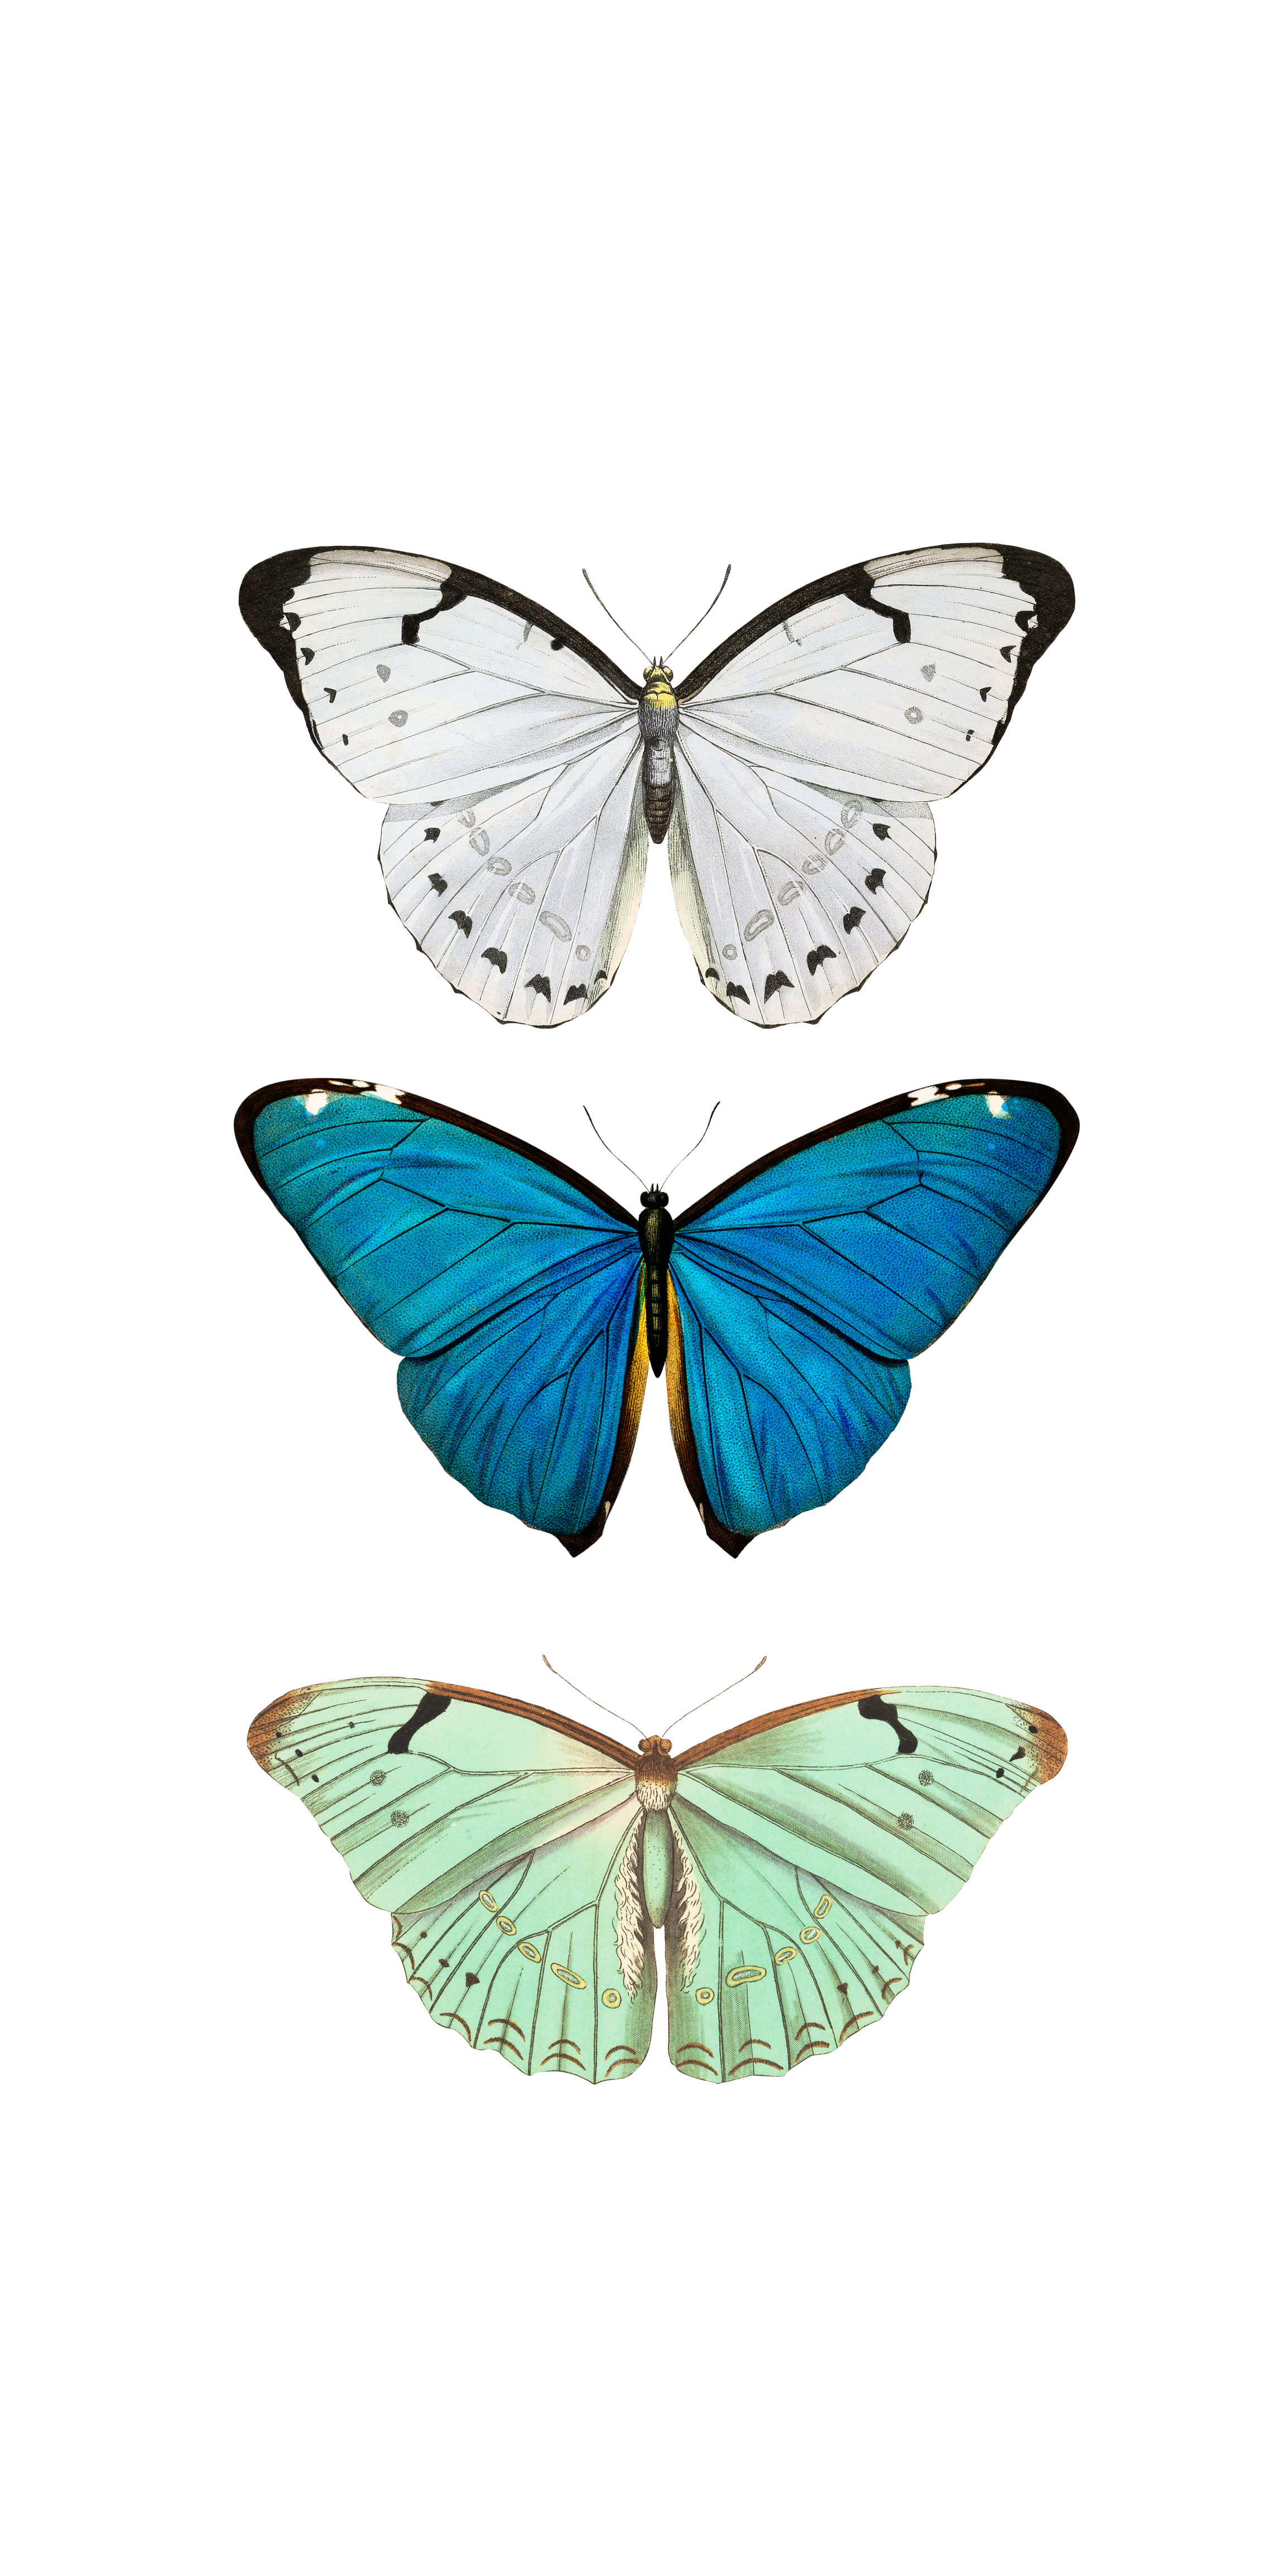 Aesthetic Butterfly Wallpaper For Iphone